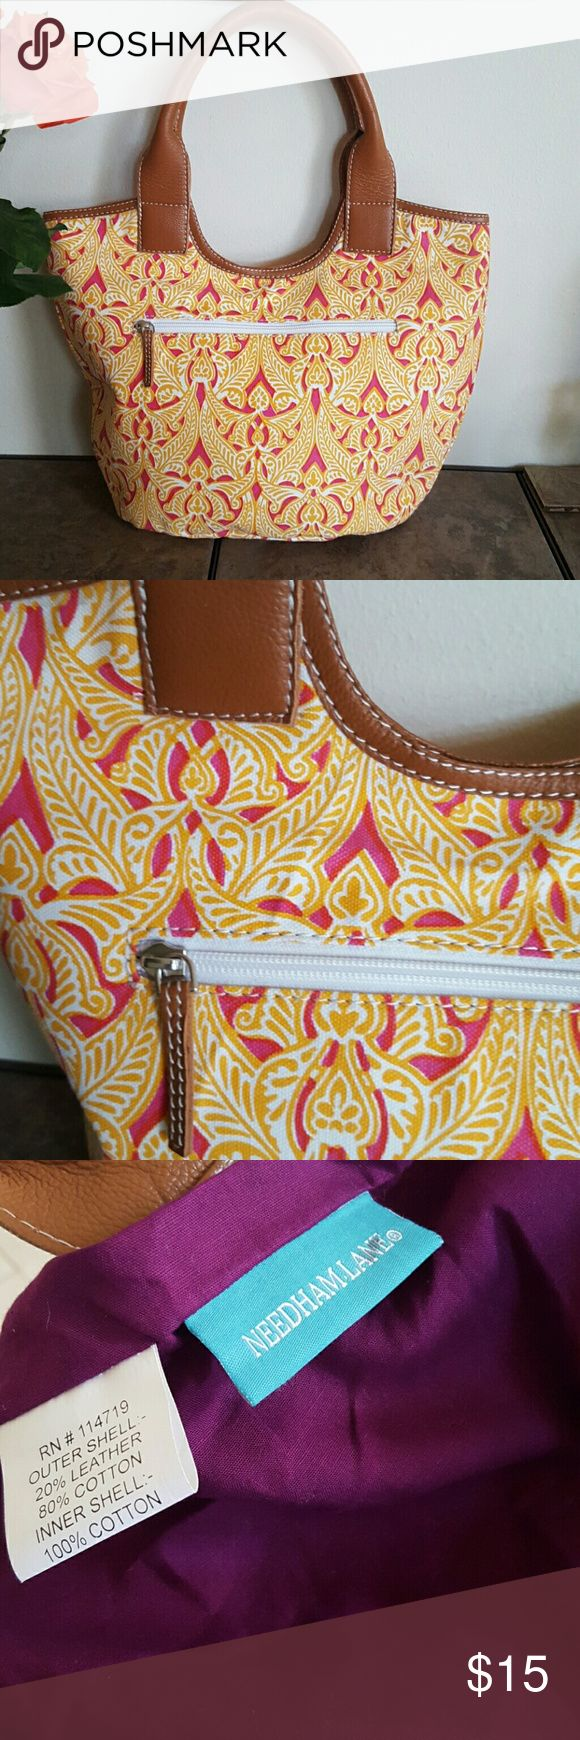 Needham Lane Market Tote Cotton canvas in a sunny summery orange and yellow with leather trim. Bags Totes